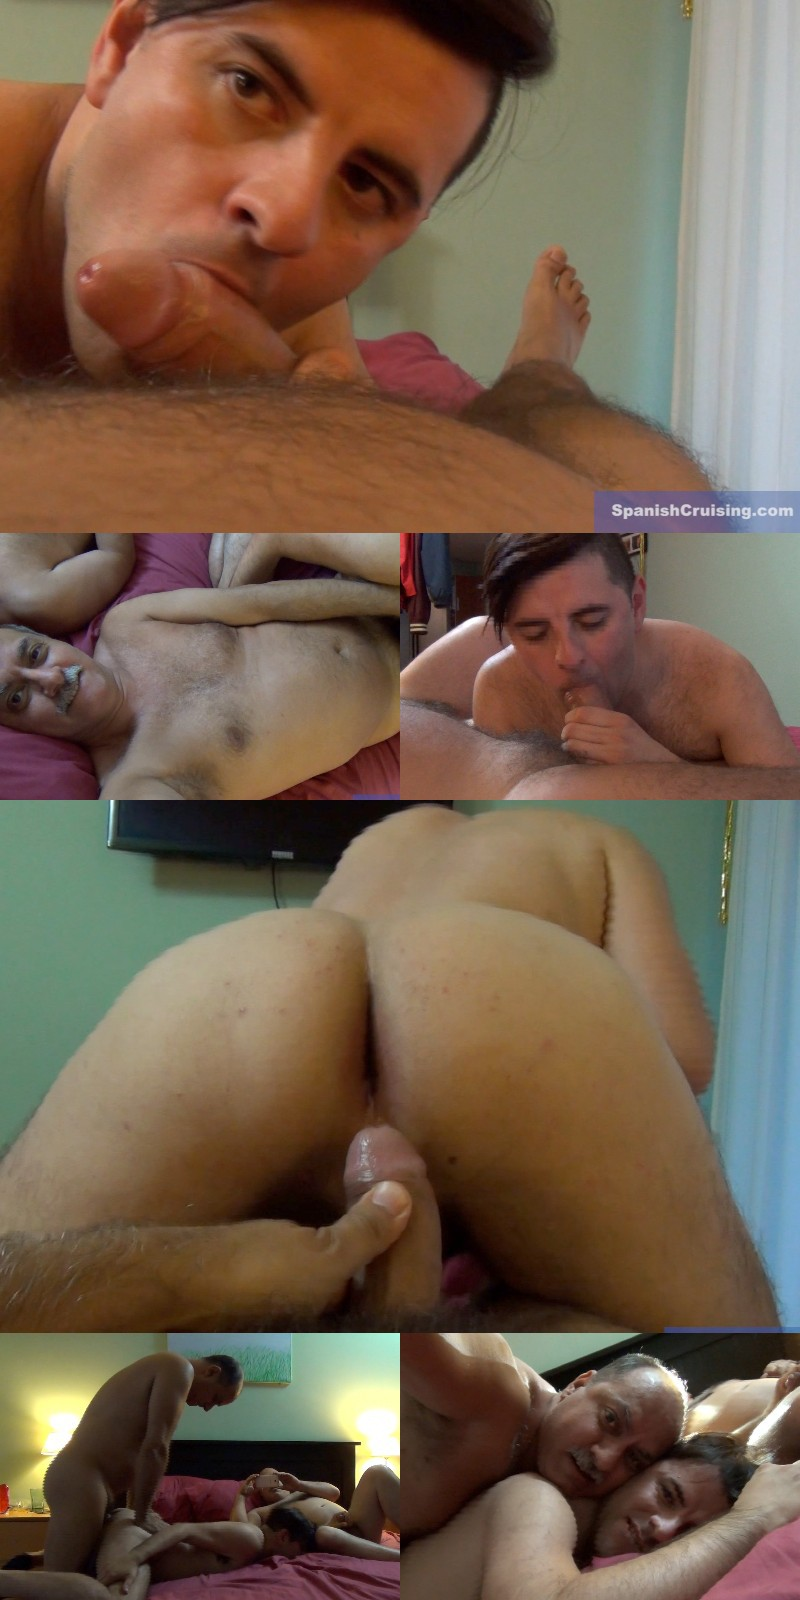 Argentinian Bottom Gets Screwed by Older Man